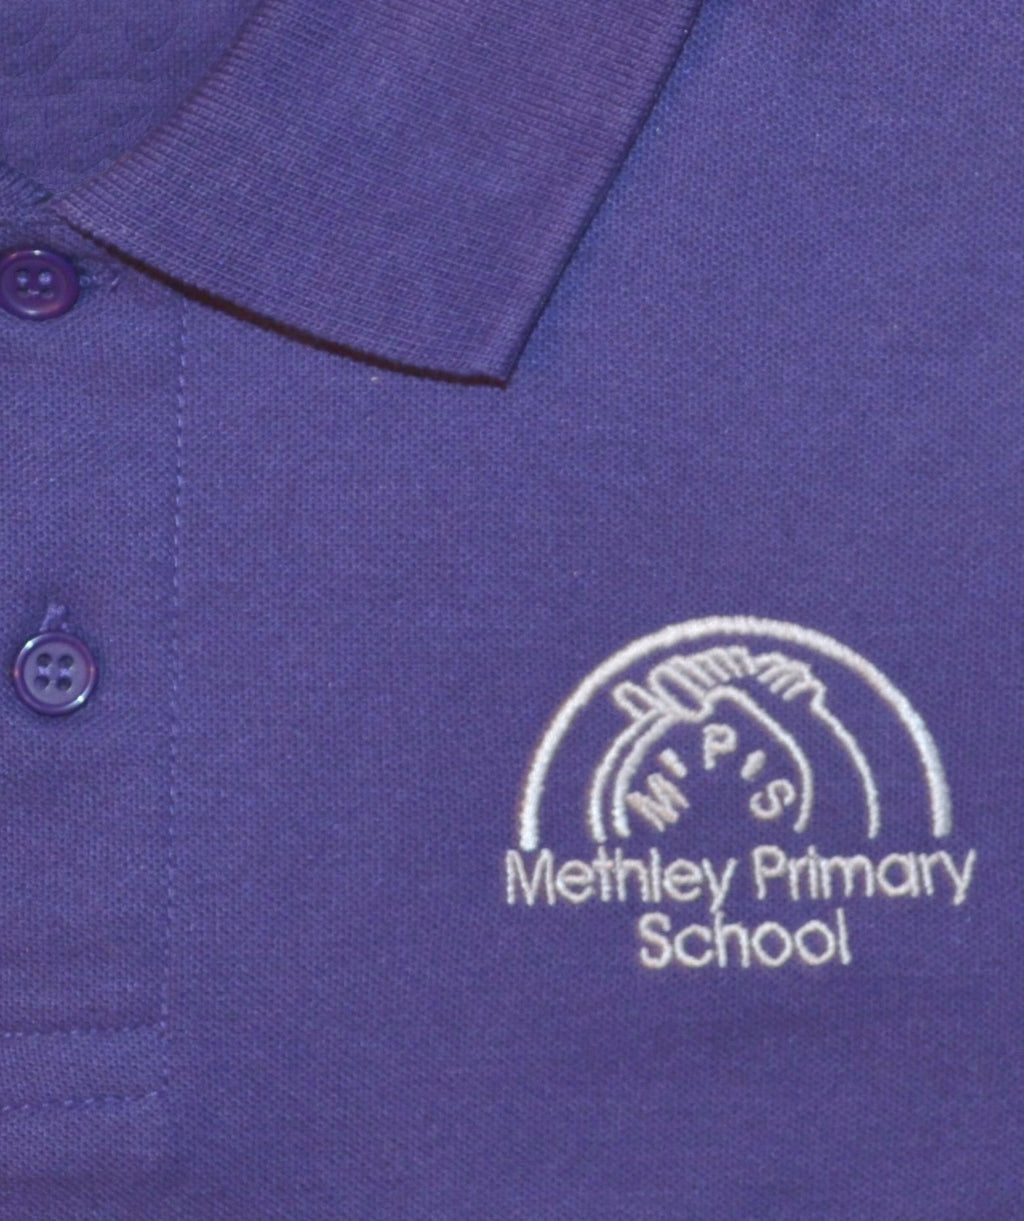 Methley Primary School Uniform Bundle 4